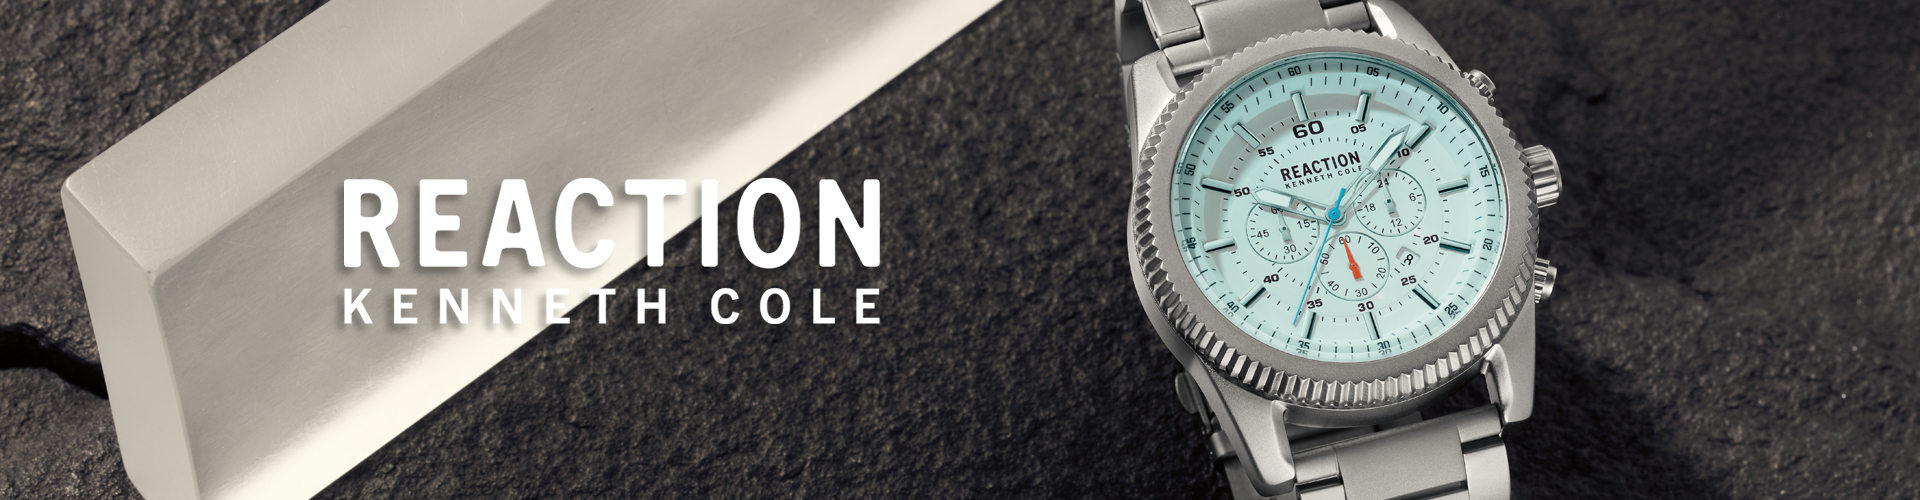 Kenneth Cole Reaction Блок 1